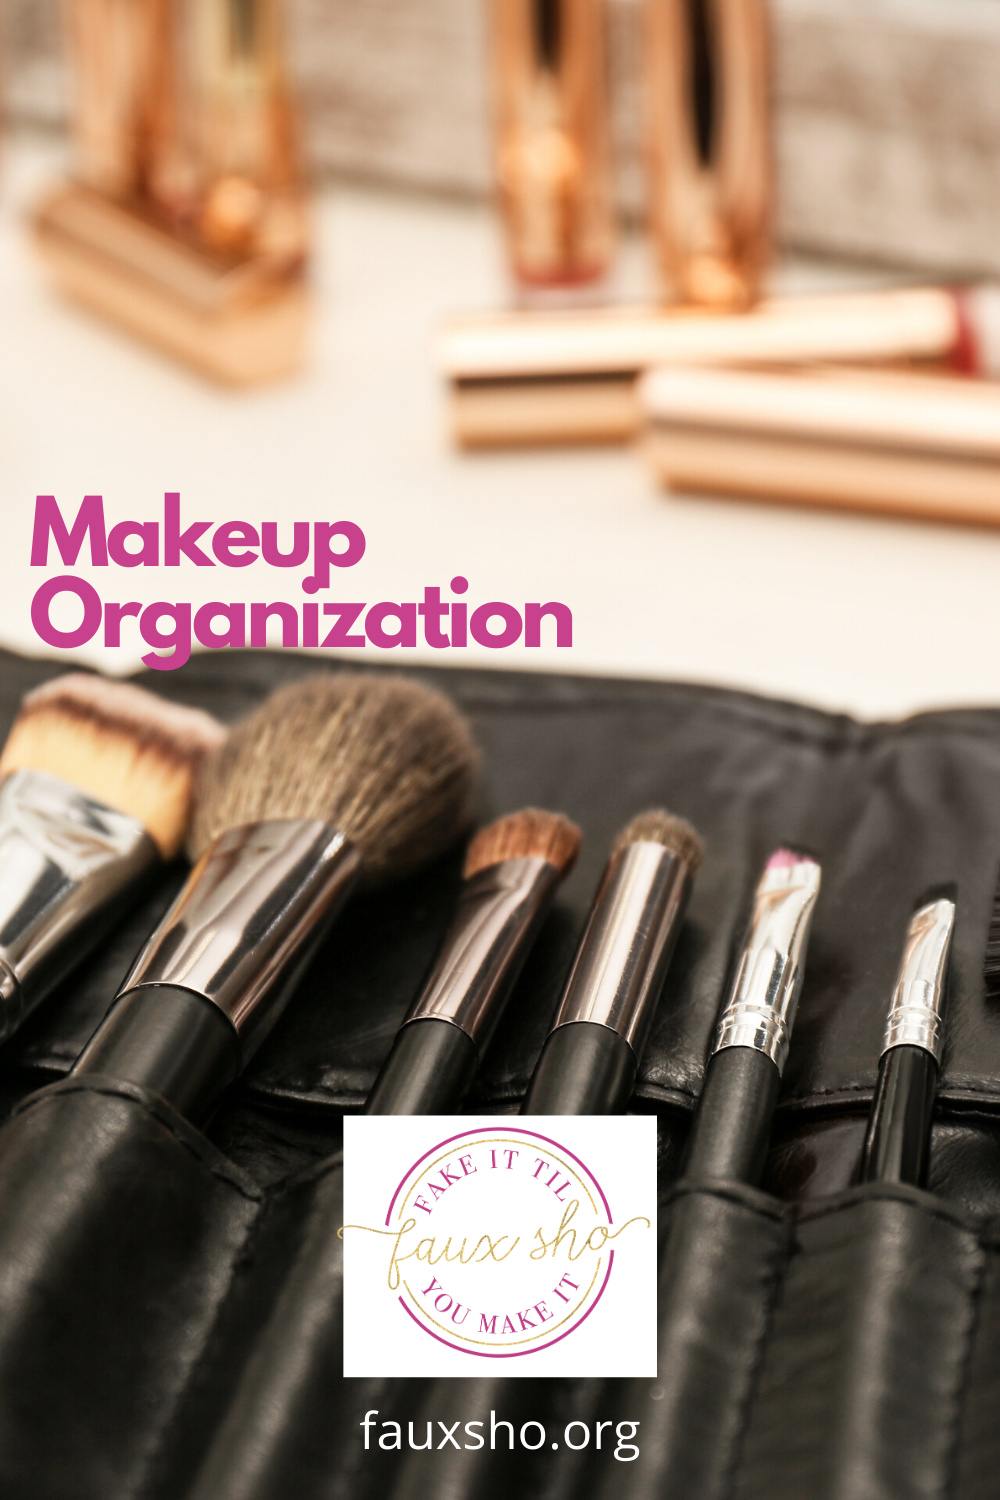 You put on makeup to look beautiful, but if your makeup is not organized, finding it can be UGLY. Why waste time looking for that mascara or lipstick? Read this post to learn about ways to organize makeup. Look beautiful without stressing. #makeuporganization #organizationideas #fauxshoblog